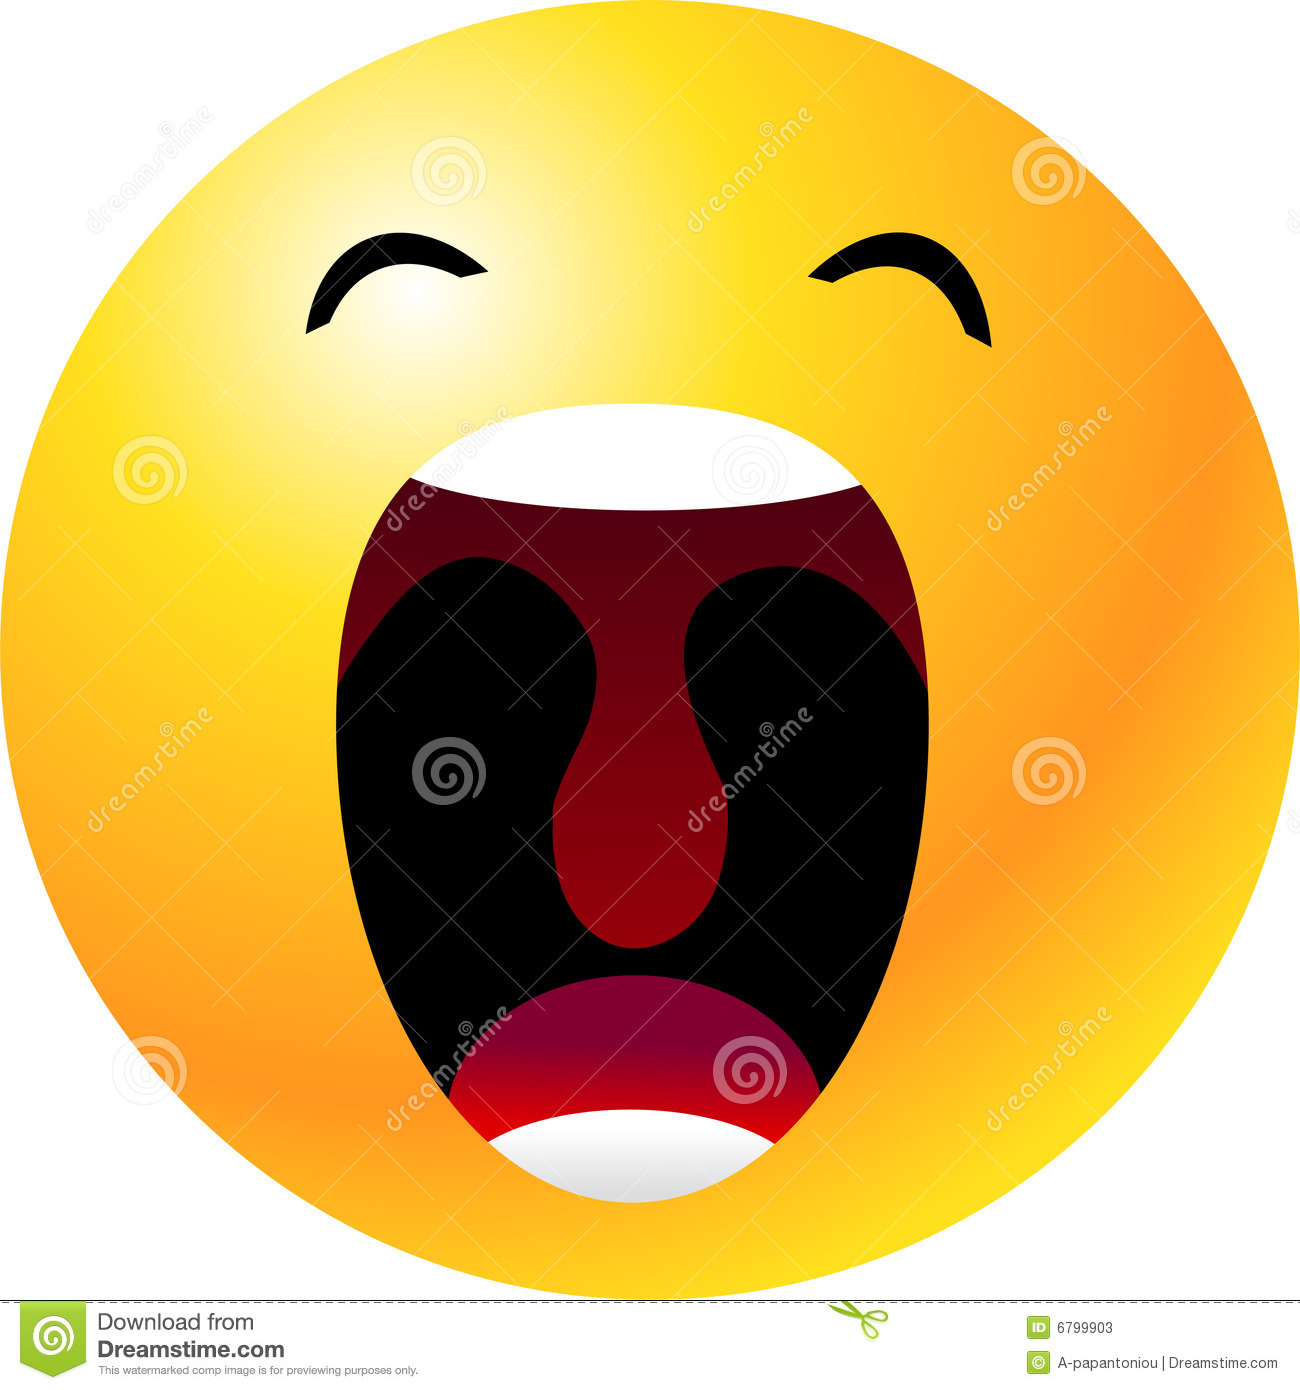 Amd clipart nose Smiley face thumbs thumbs clipart